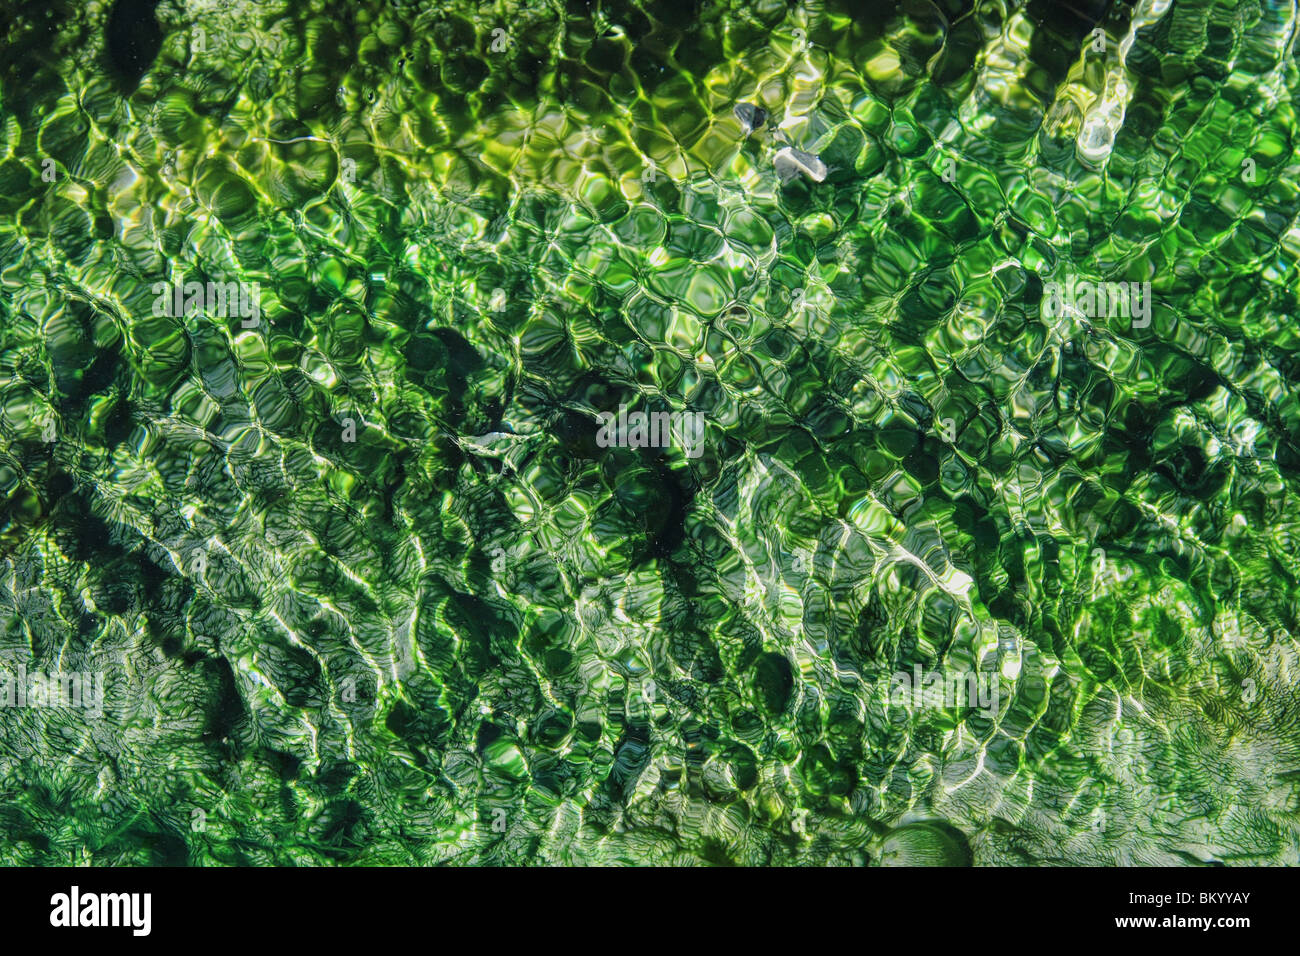 algae water surface stockfotos algae water surface bilder alamy. Black Bedroom Furniture Sets. Home Design Ideas